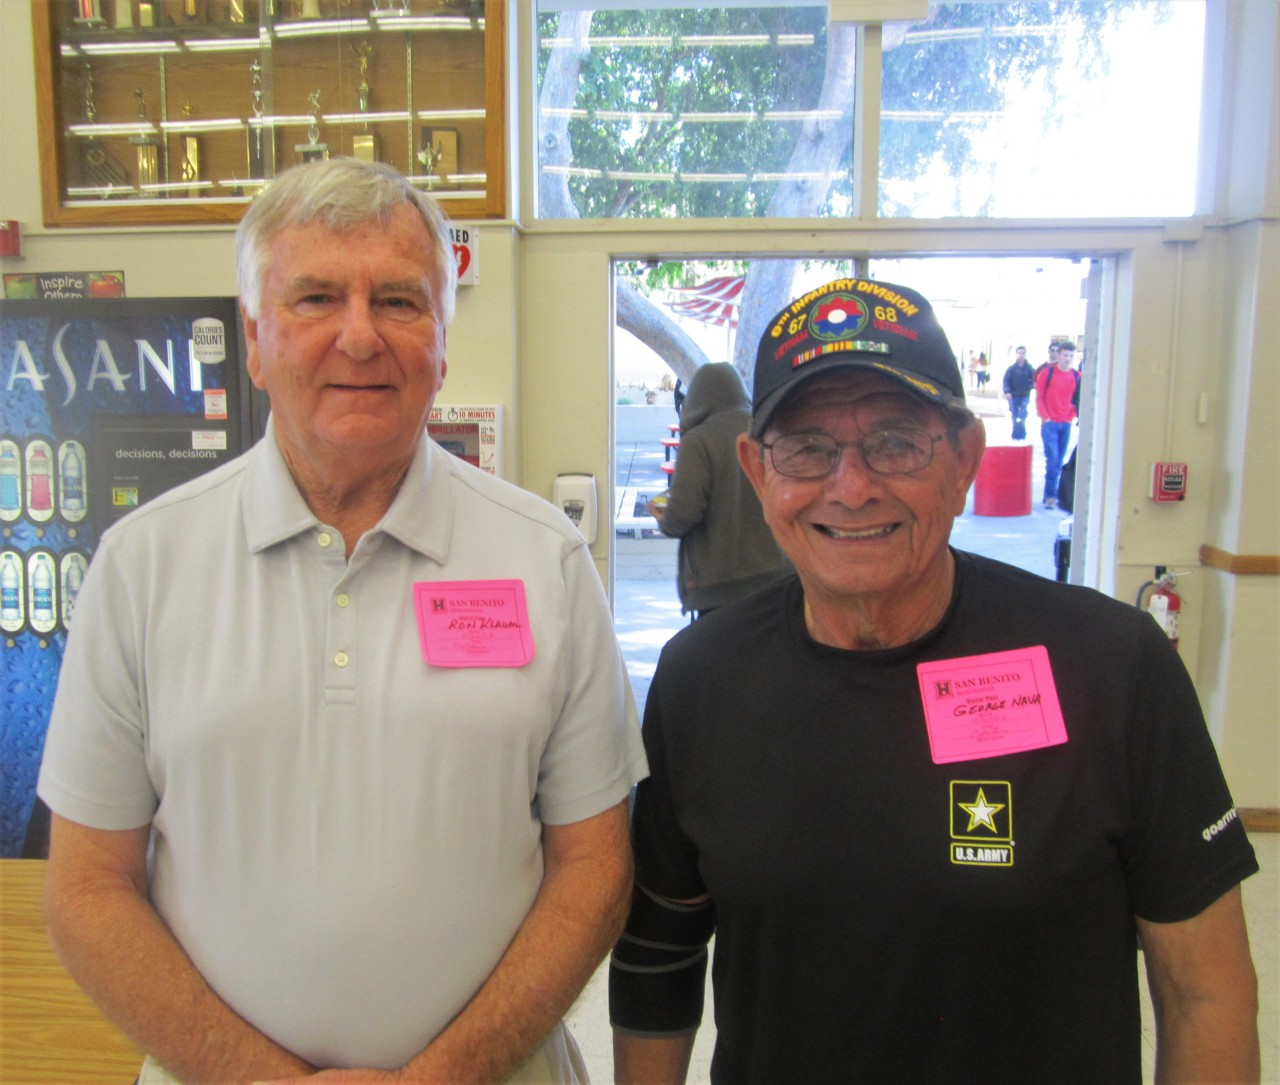 Vietnam veterans Ron Klauer and George Nava also shared their stories. Photo by Becky Bonner.